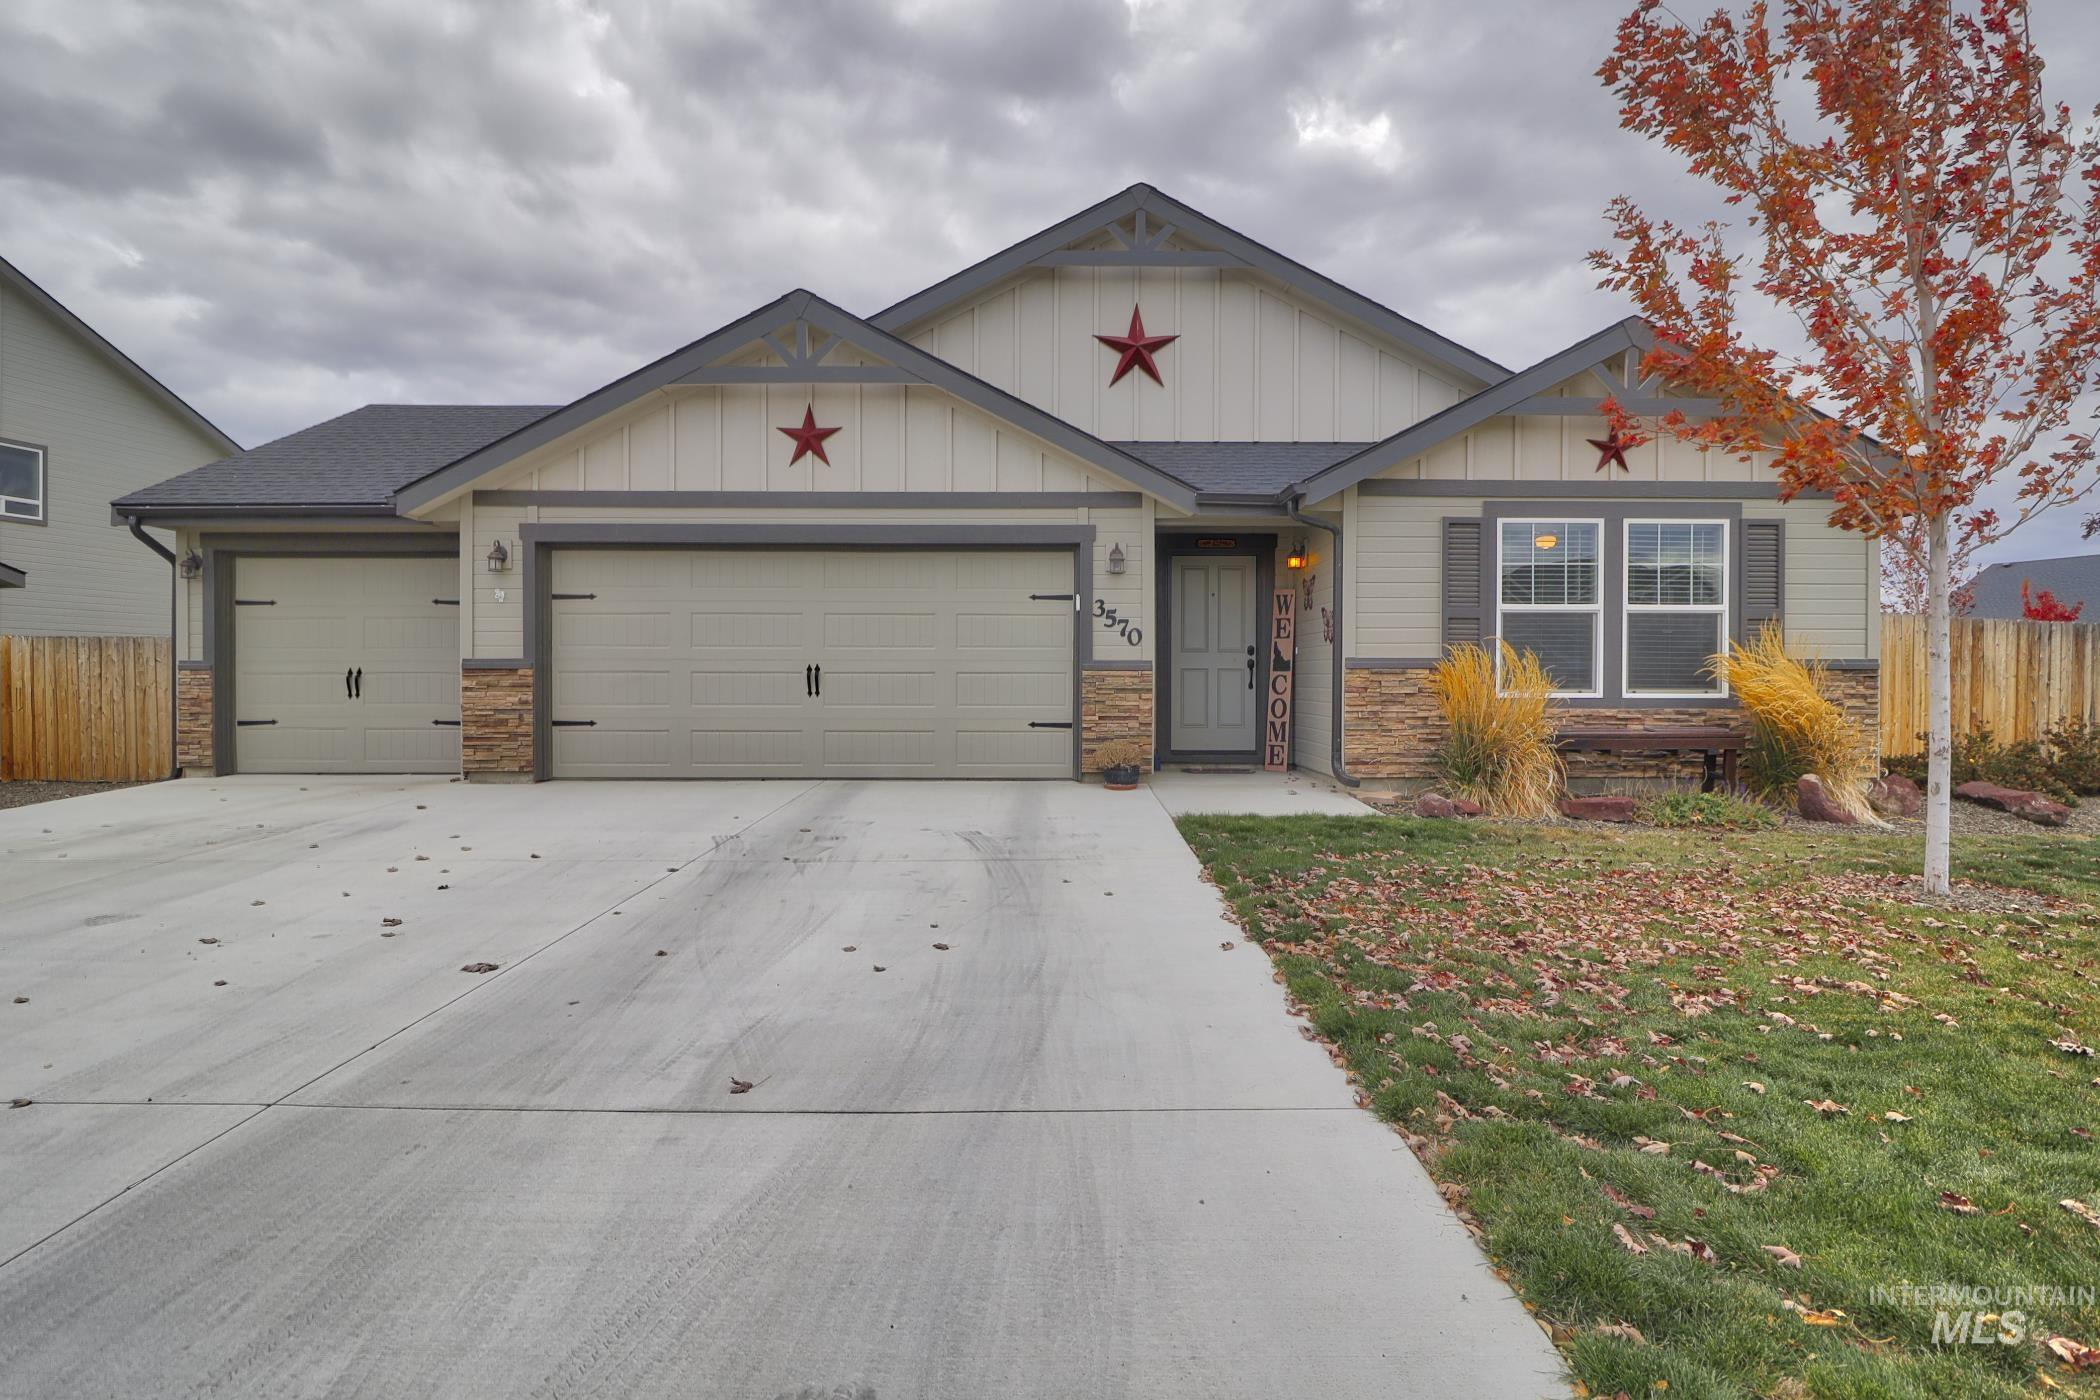 Corner Lot! Beautifully constructed, almost new 2007 sq ft, 3 bed, 2 bath with office/den, single level home with RV parking.  Granite countertops in kitchen wood laminate flooring throughout common areas. Large back yard with storage shed. 3 car garage plus extra deep workspace for all your projects, more like a 3 1/2 car garage. Built in 2018, this home is in like-new condition and ready for you. Call today for your private showing. The Crestwood Floorplan. - Thomas C Evans, Voice: 208-270-1957, Silvercreek Realty Group, Main: 208-377-0422, http://www.ehrrealtyidaho.com